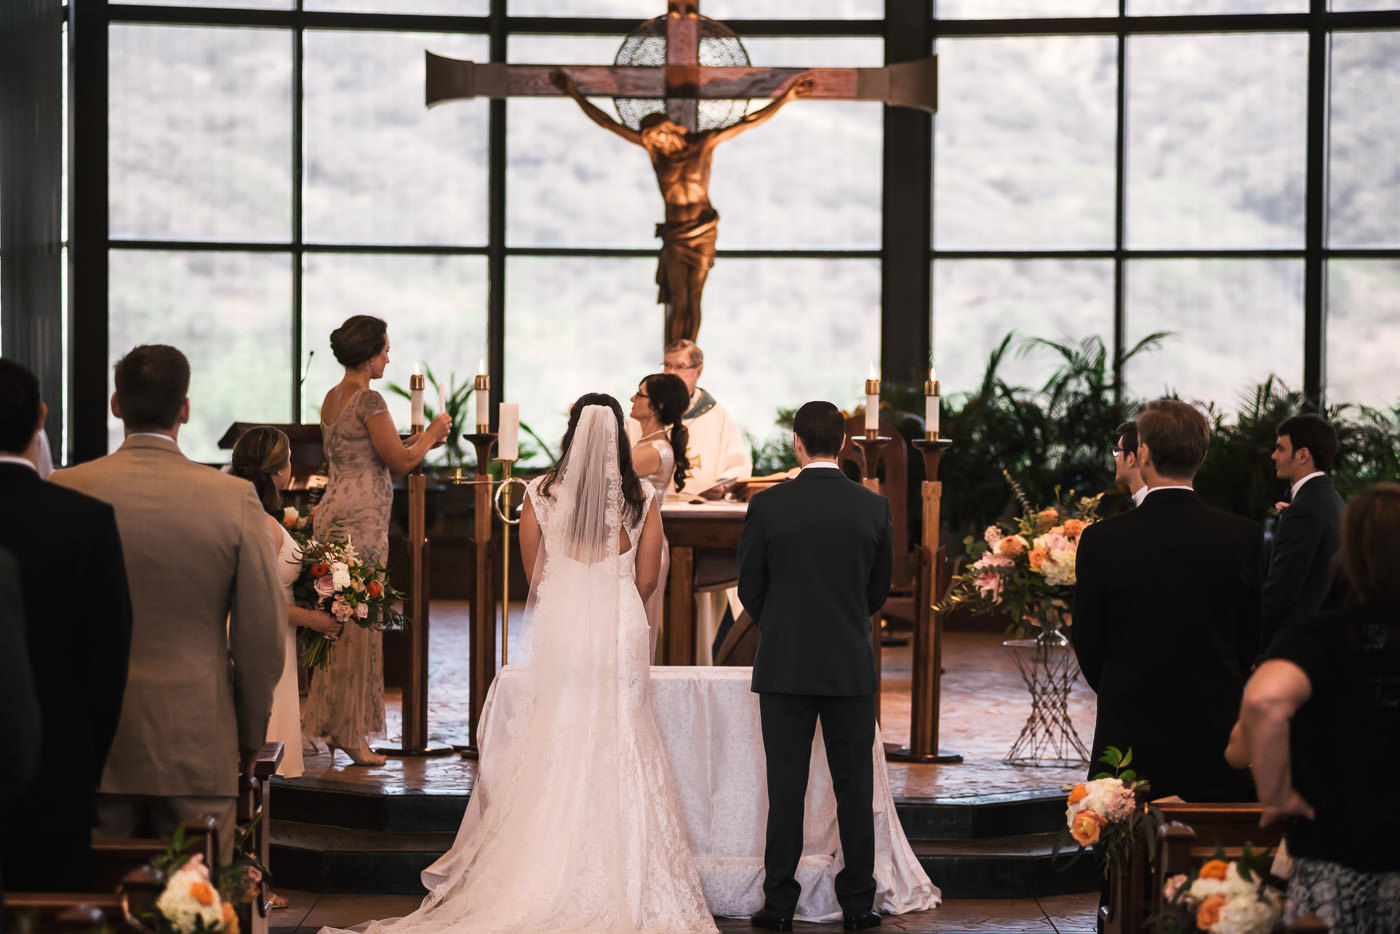 Catholic wedding ceremony at St Therese Carmel Church in La Jolla.